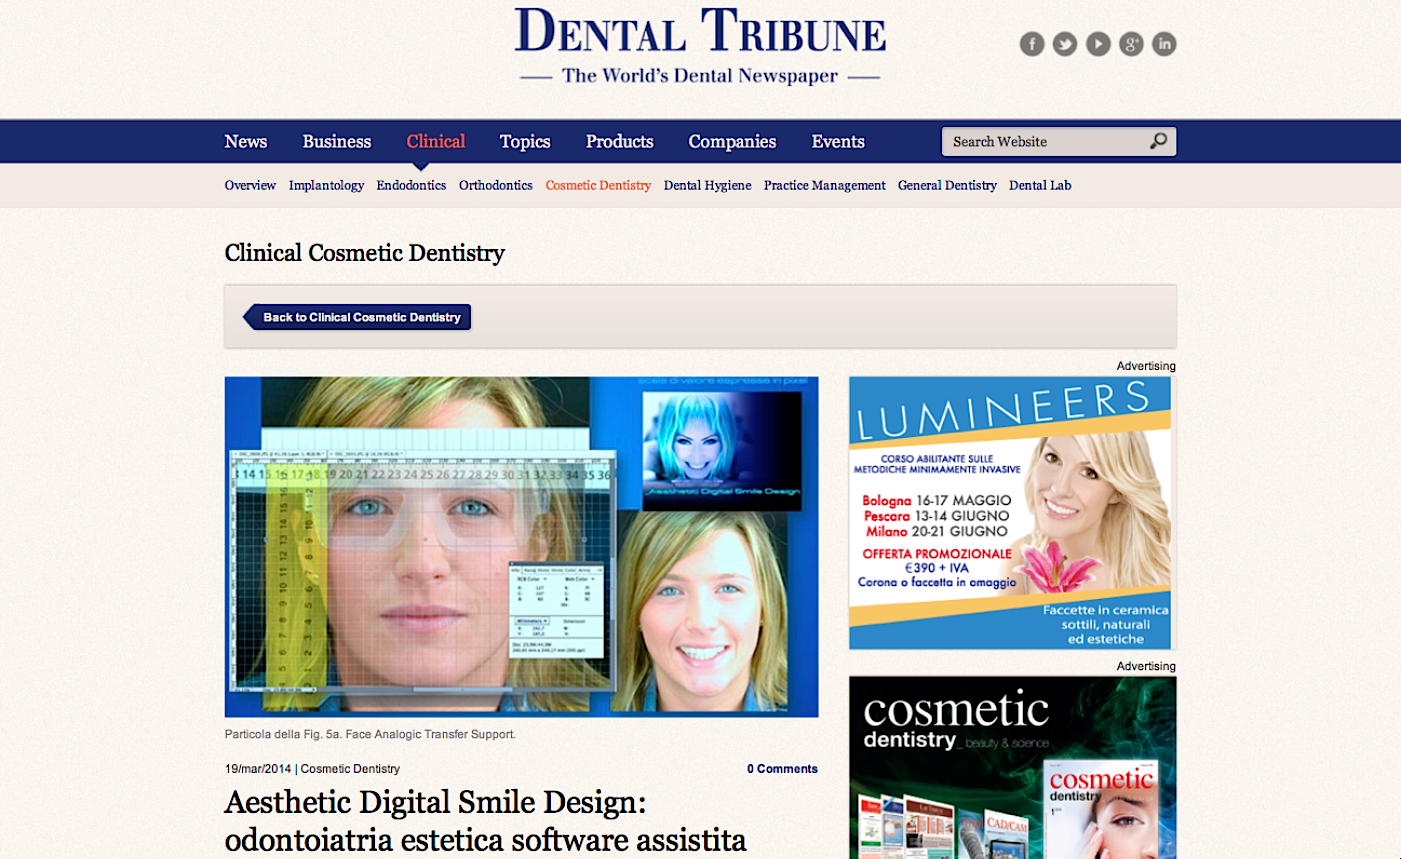 Aesthetic Digital Smile Design DT